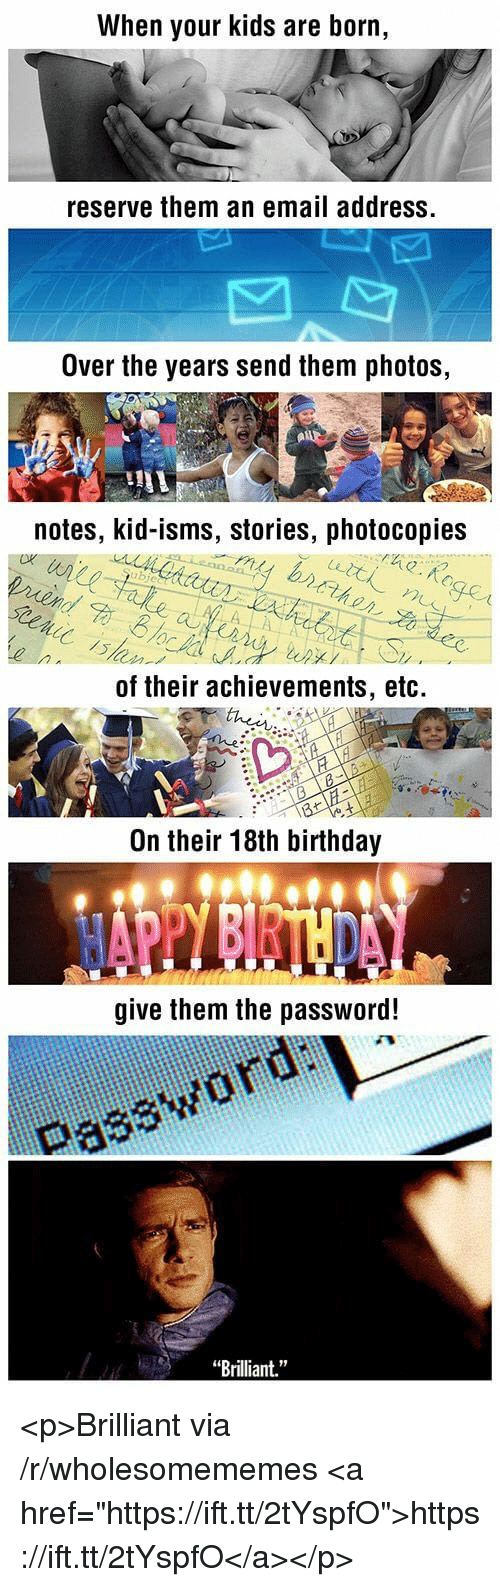 """Birthday, Email, and Kids: When your kids are born,  reserve them an email address.  Over the years send them photos,  notes, kid-isms, stories, photocopies  of their achievements, etc.  On their 18th birthday  give them the password!  Password uai  Brilliant."""" <p>Brilliant via /r/wholesomememes <a href=""""https://ift.tt/2tYspfO"""">https://ift.tt/2tYspfO</a></p>"""